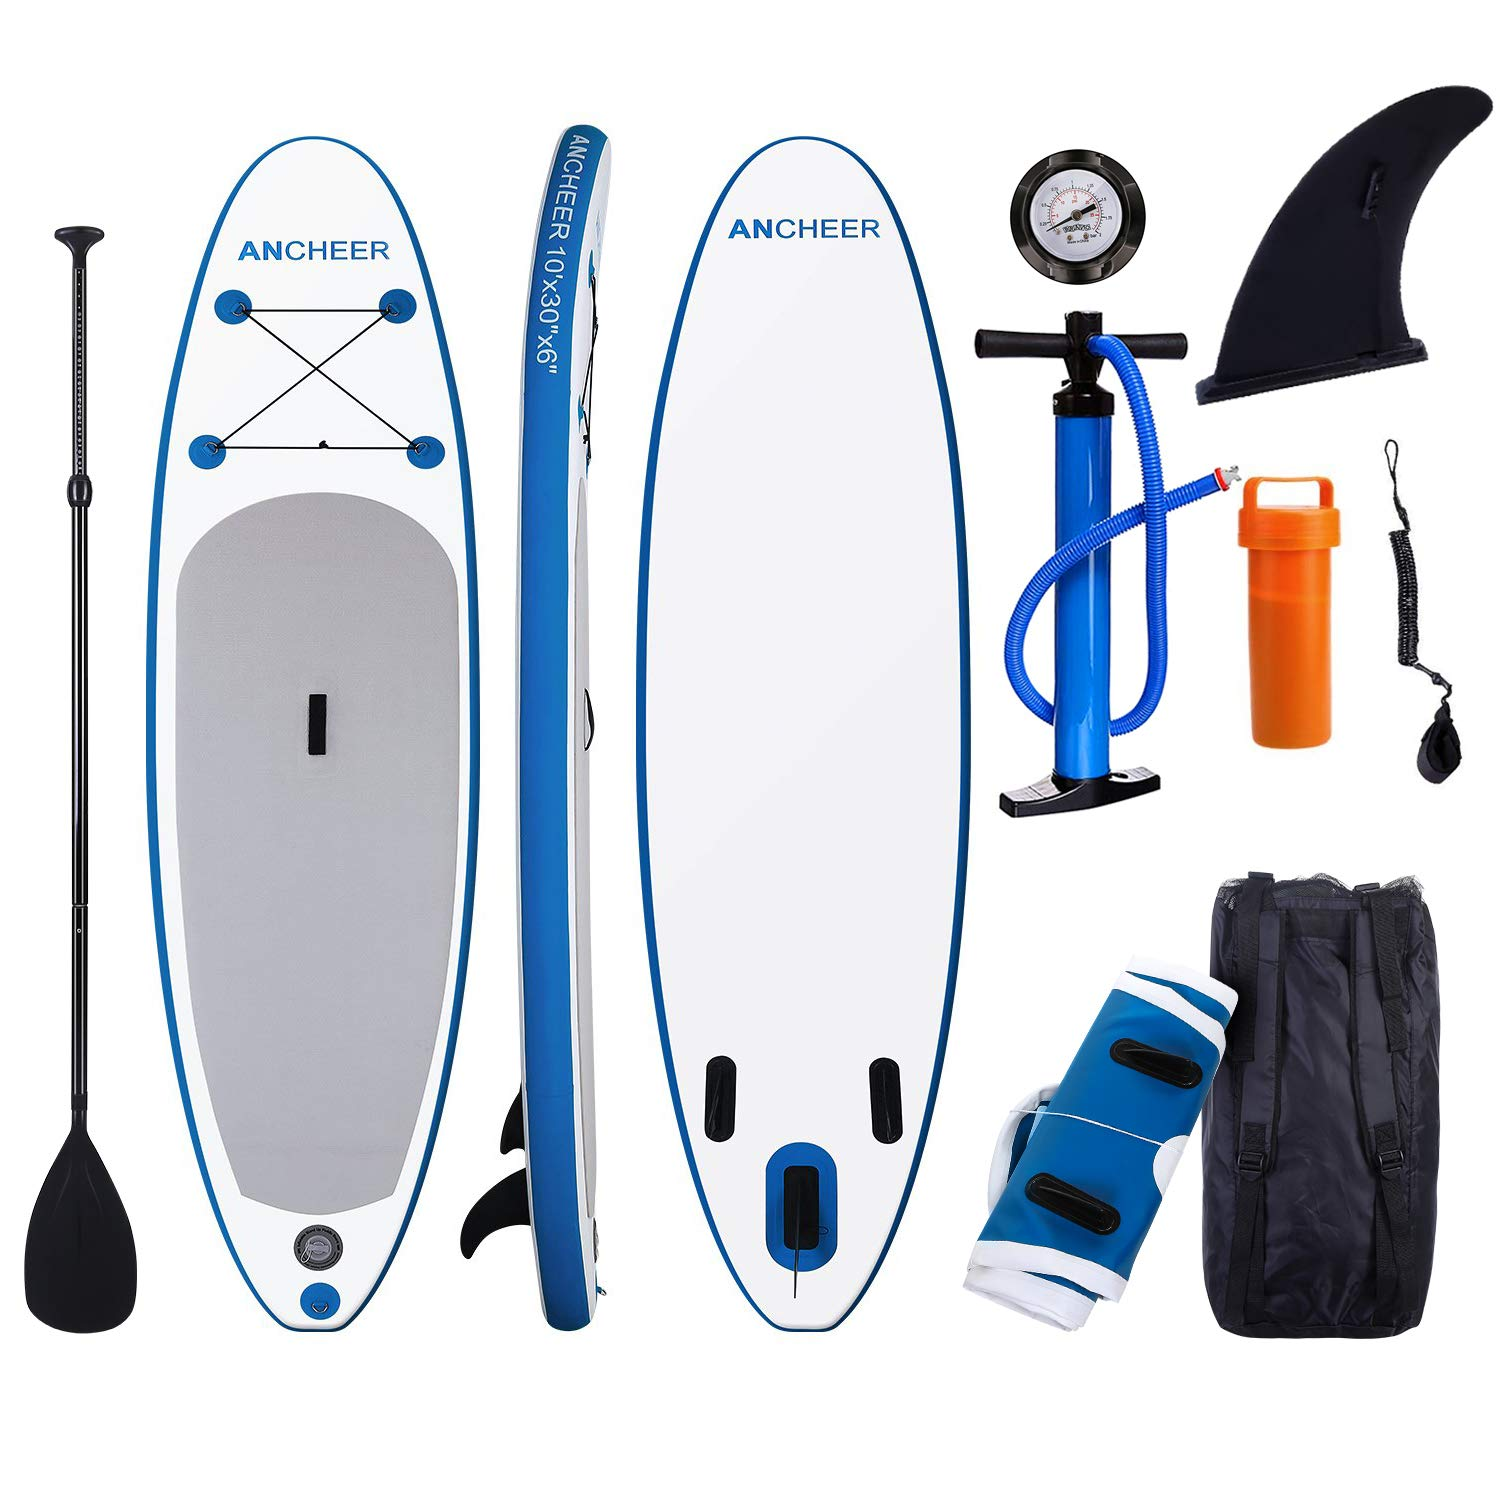 ANCHEER Inflatable Stand Up Paddle Board 10' with Non-Slip Deck,iSUP Boards w/Complete KIT, Adjustable Paddle, Leash, Fin, Hand Pump and Backpack, Youth & Adult